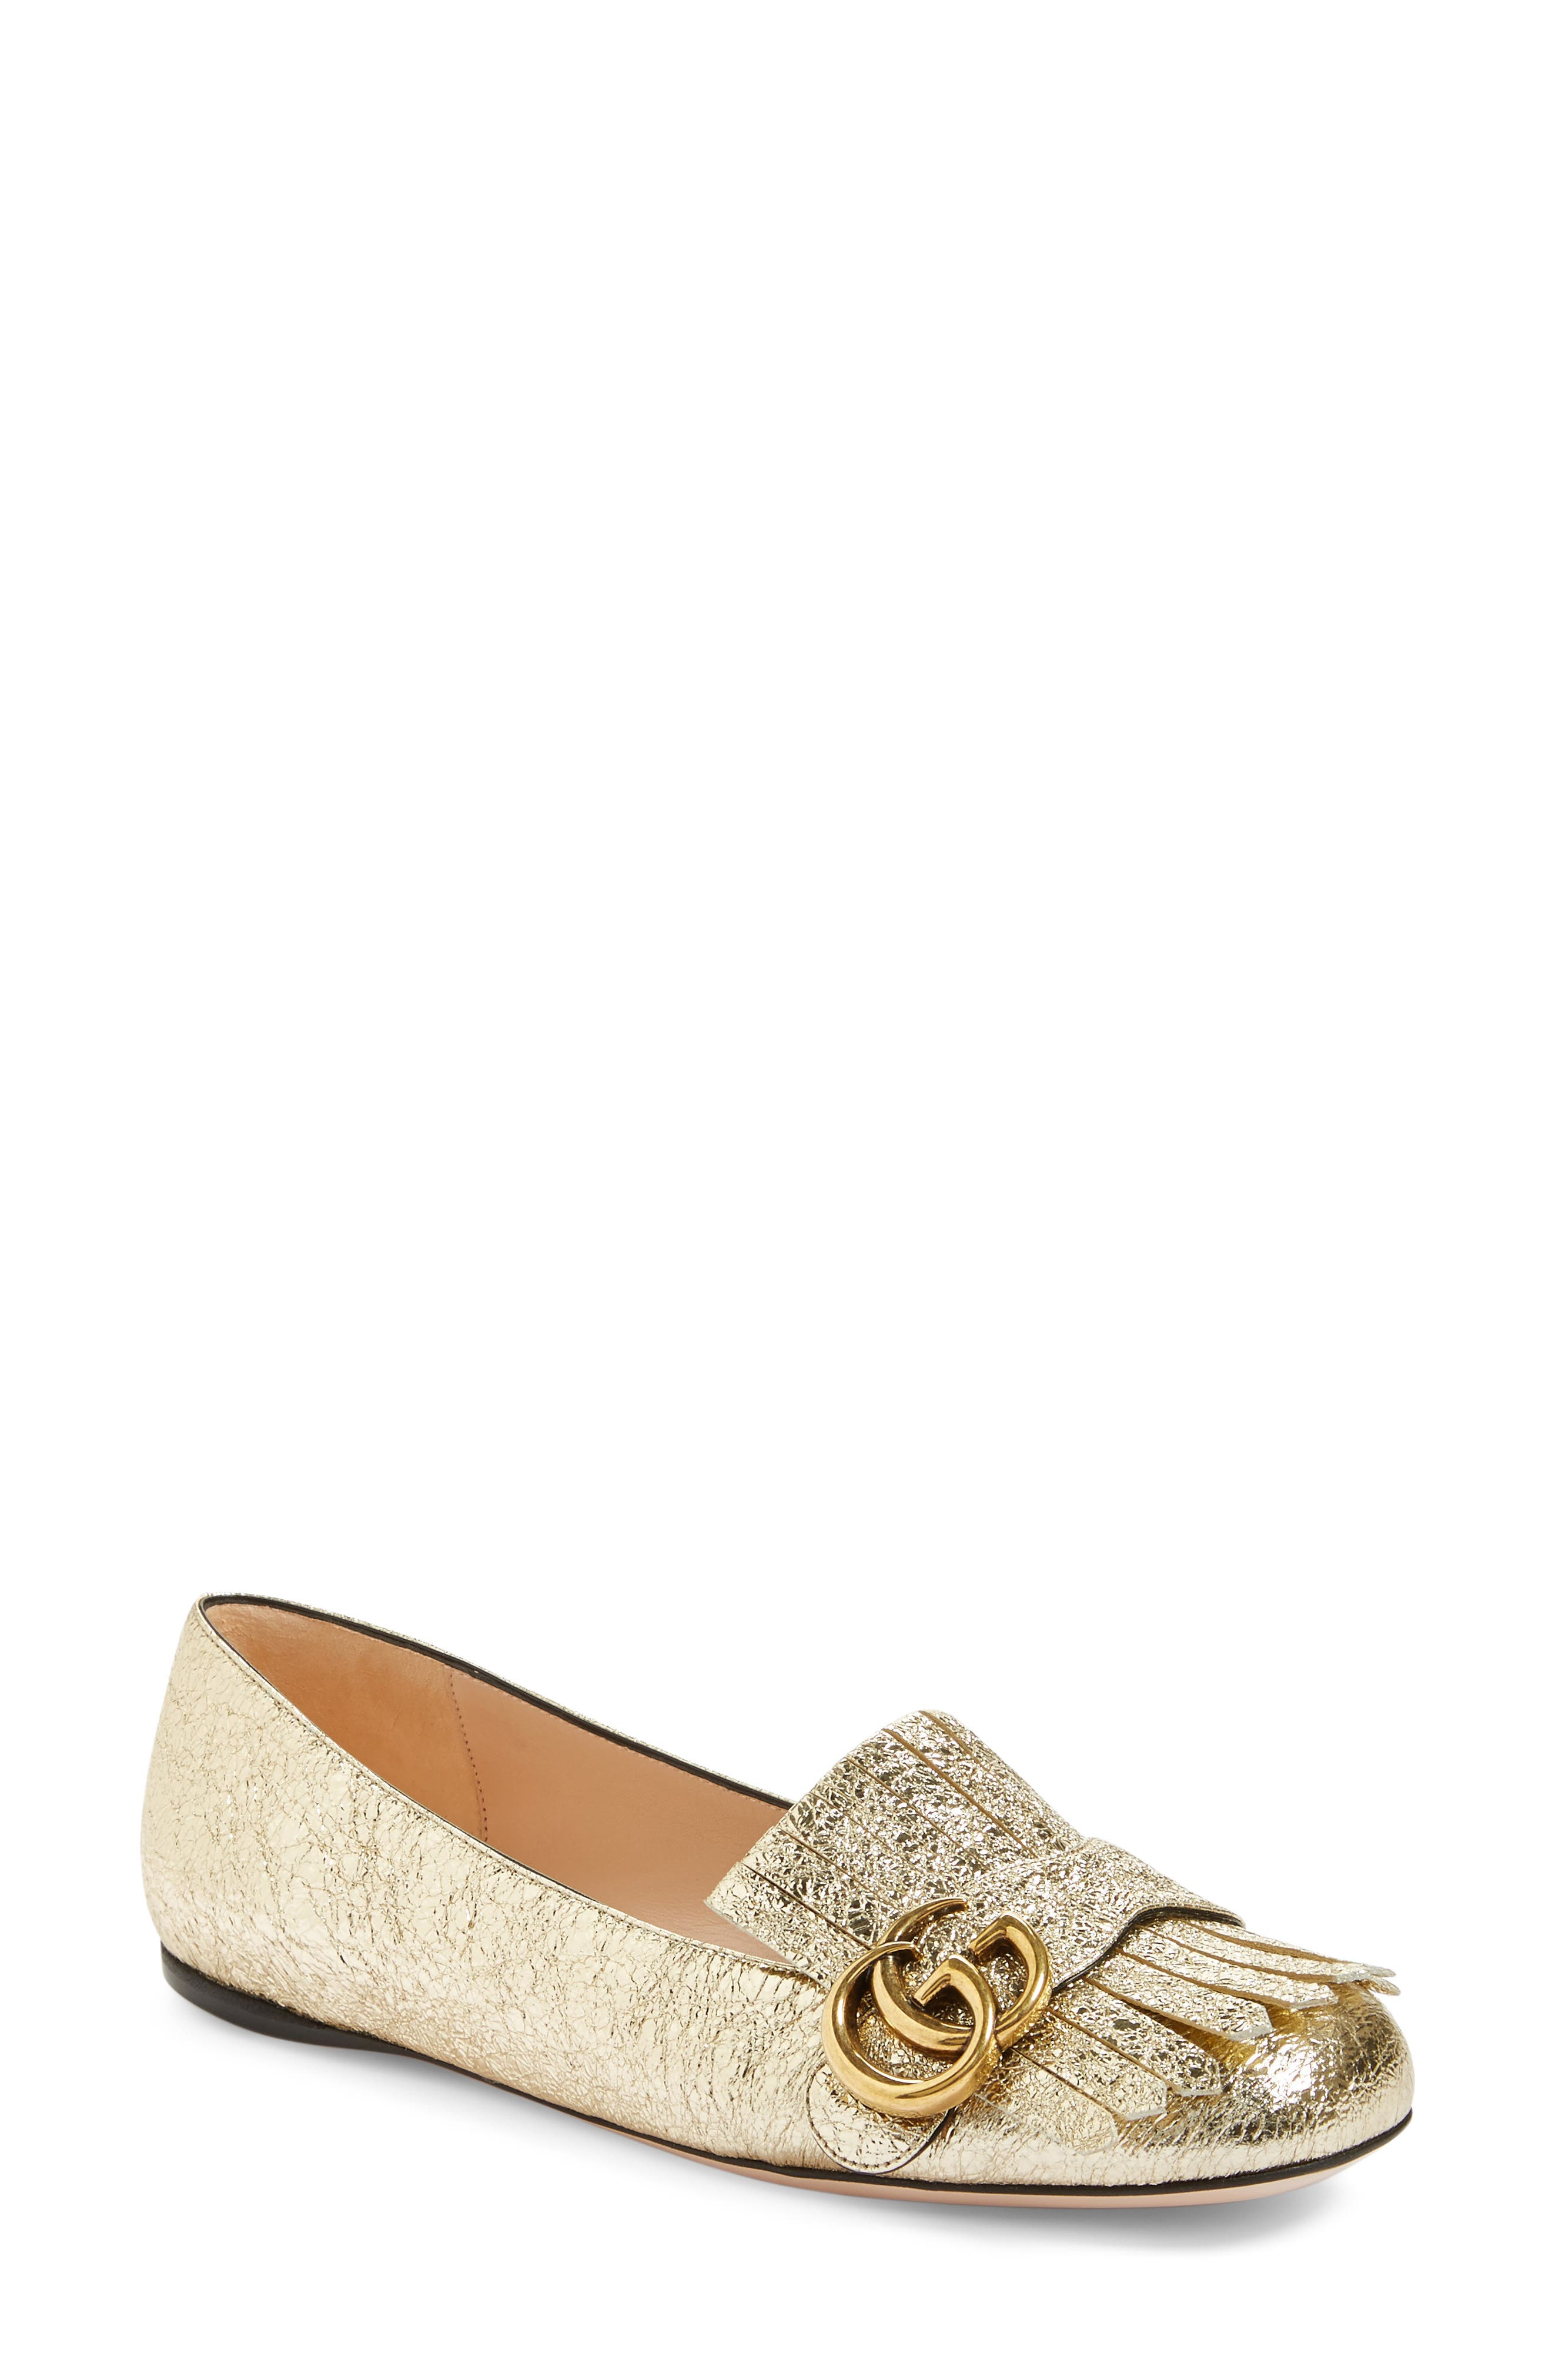 GG Marmont Flat,                         Main,                         color, GOLD LEATHER